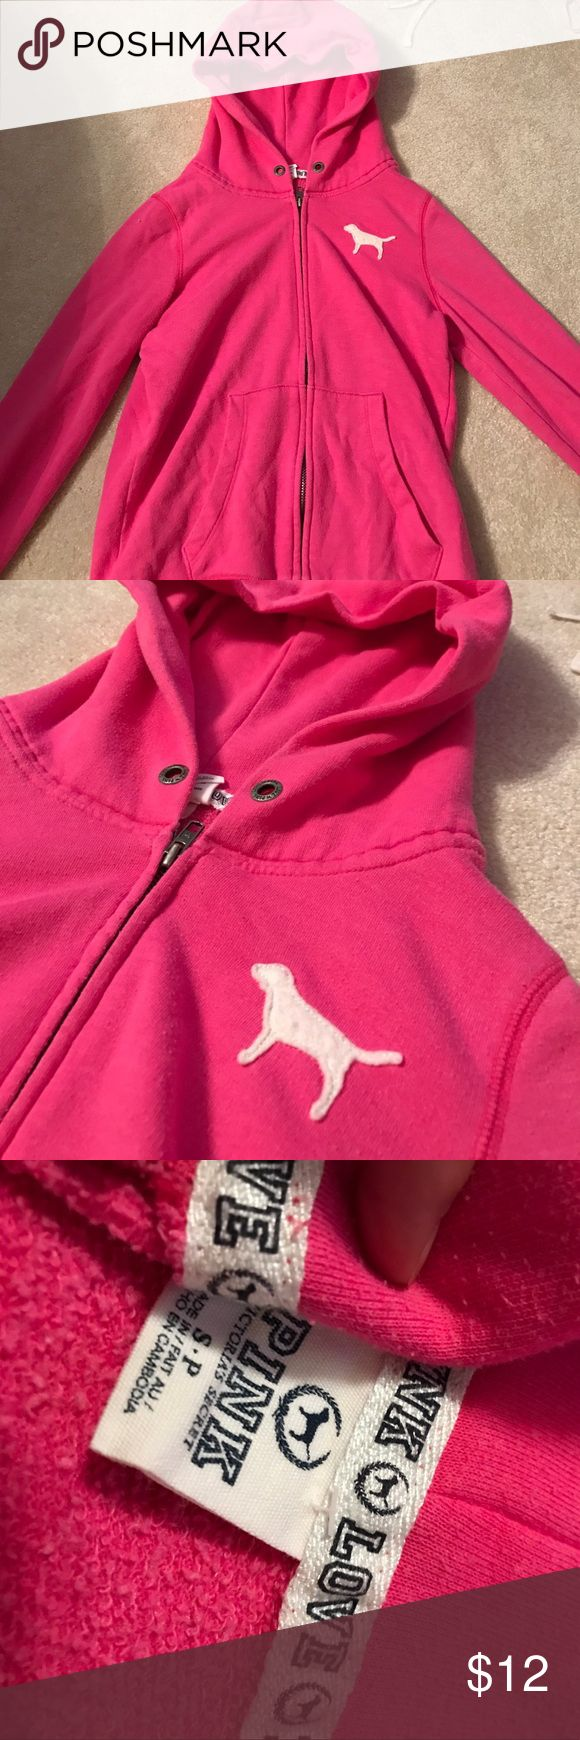 Pink Zip up jacket Pink zip up jacket from PINK Victoria Secret. Size Small. Worn frequently, but still great condition and very comfy! This was my favorite jacket, just out grew it! PINK Victoria's Secret Jackets & Coats